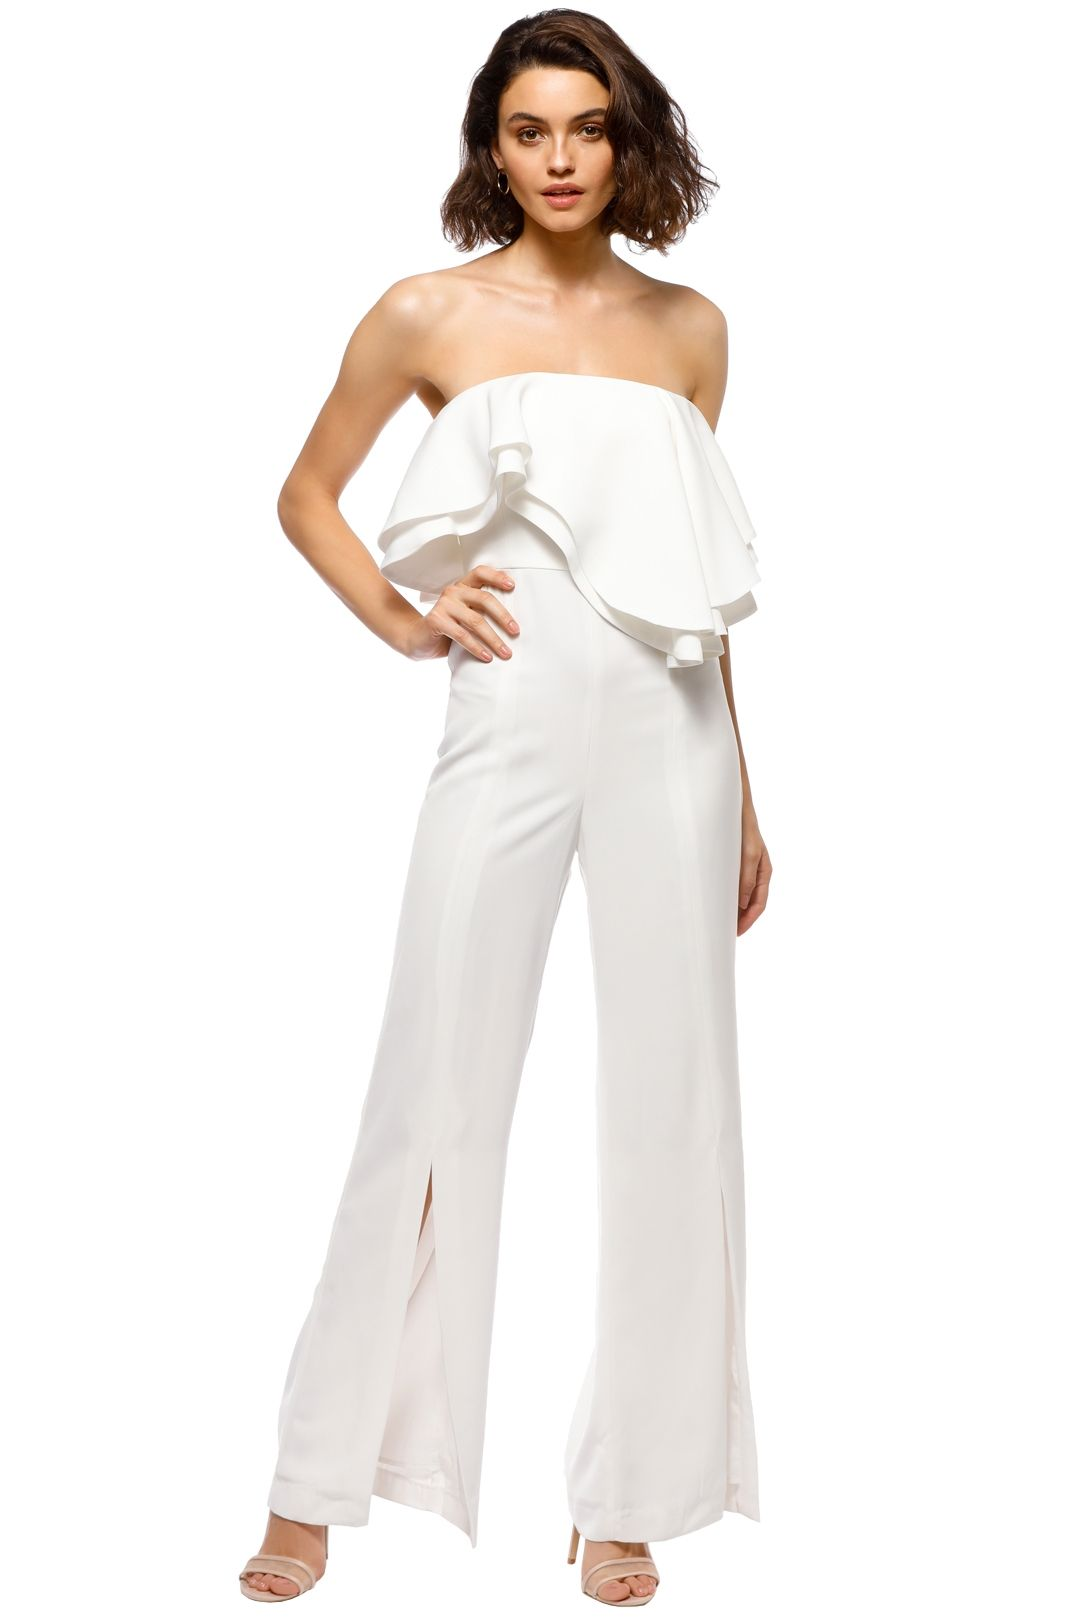 C_MEO - With You Jumpsuit - White - Front